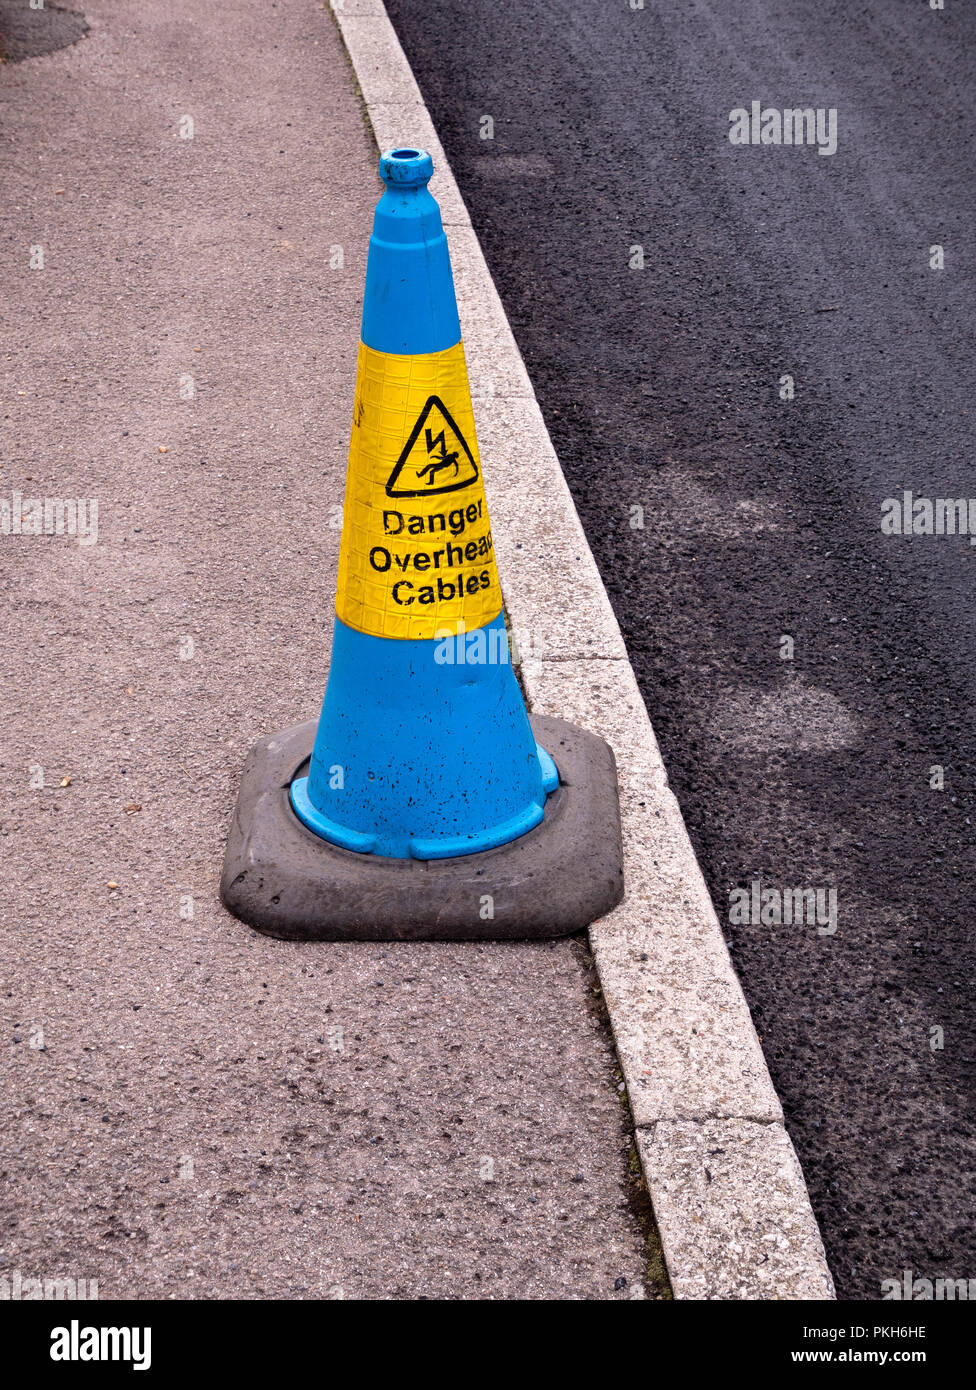 A blue traffic cone warning of overhead cables - Stock Image